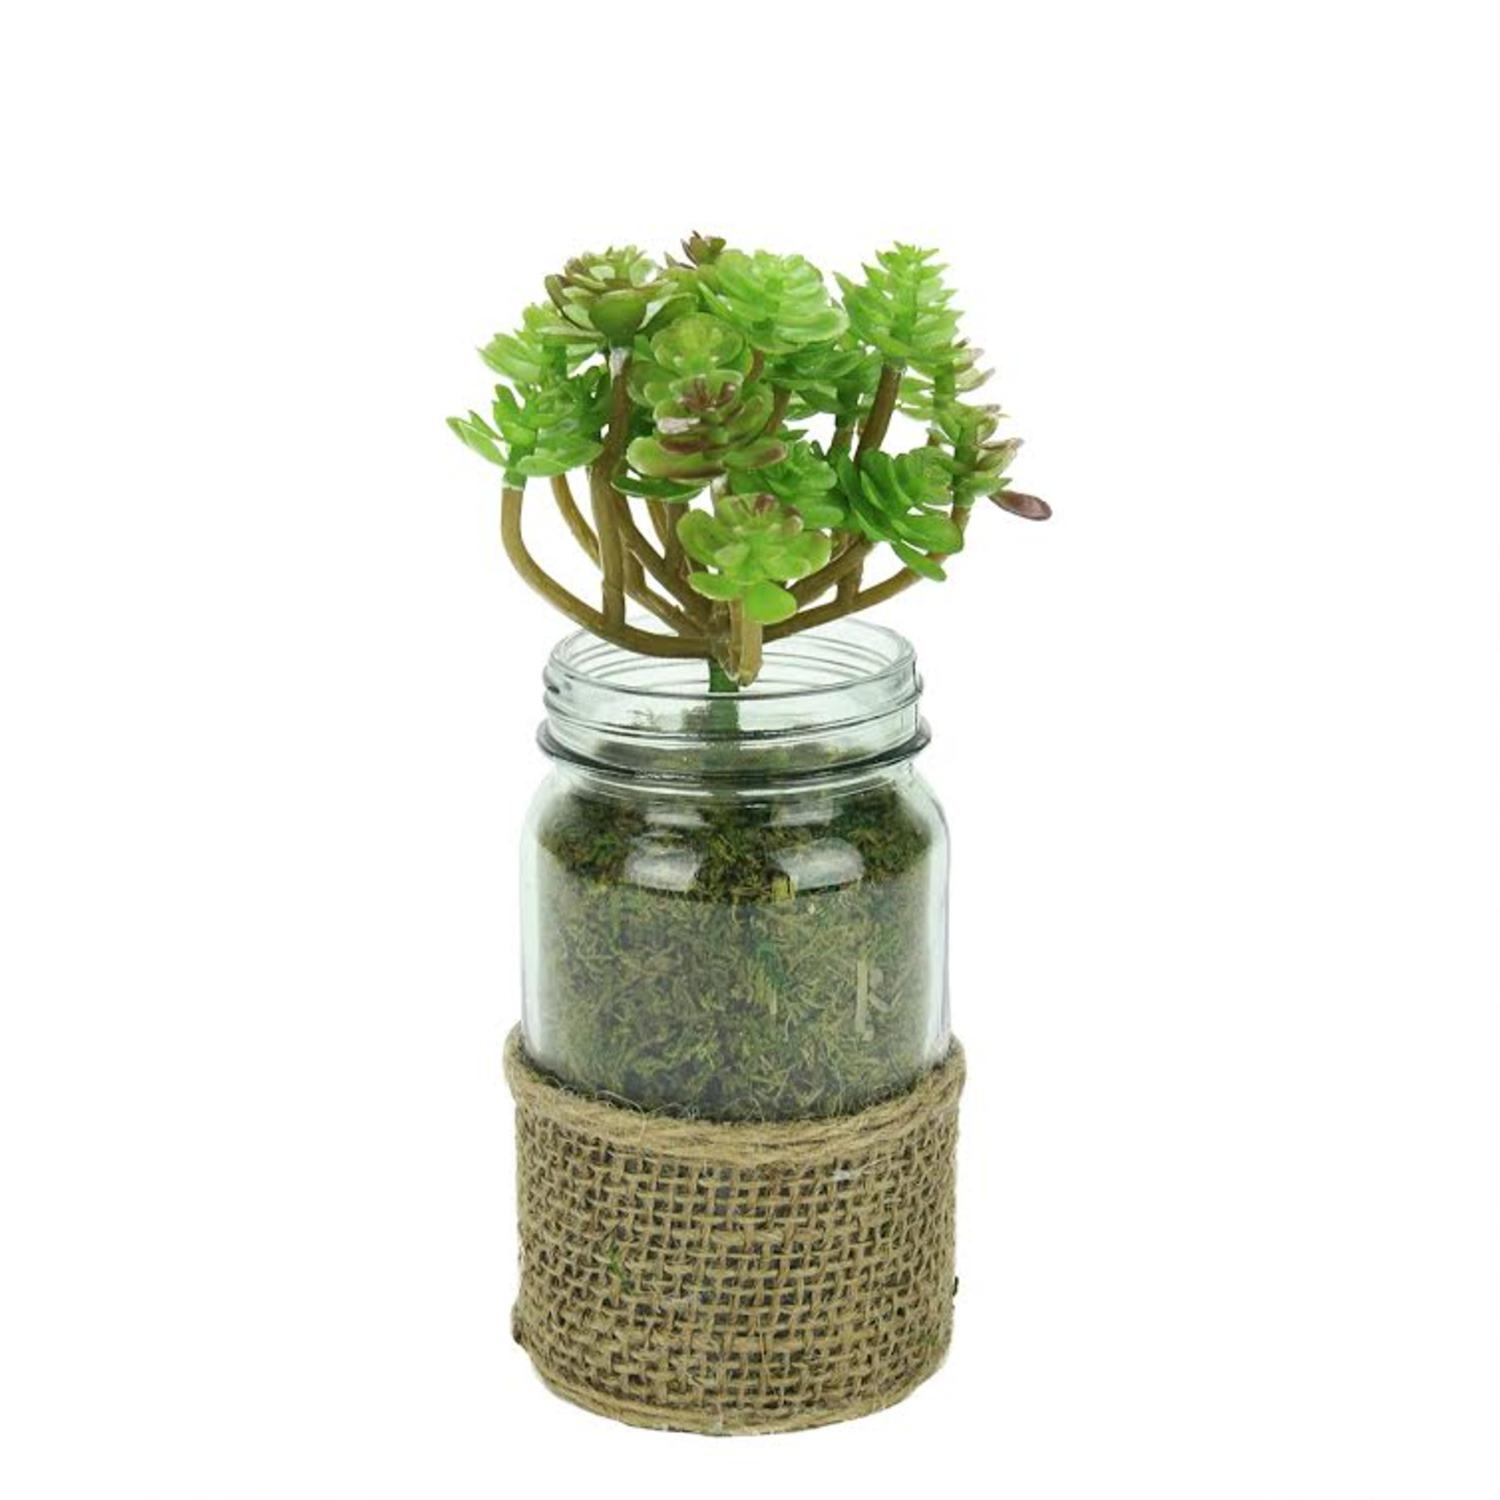 Artificial Potted Crassula Succulent Plant in Glass Jar with Burlap Grip 7.25""